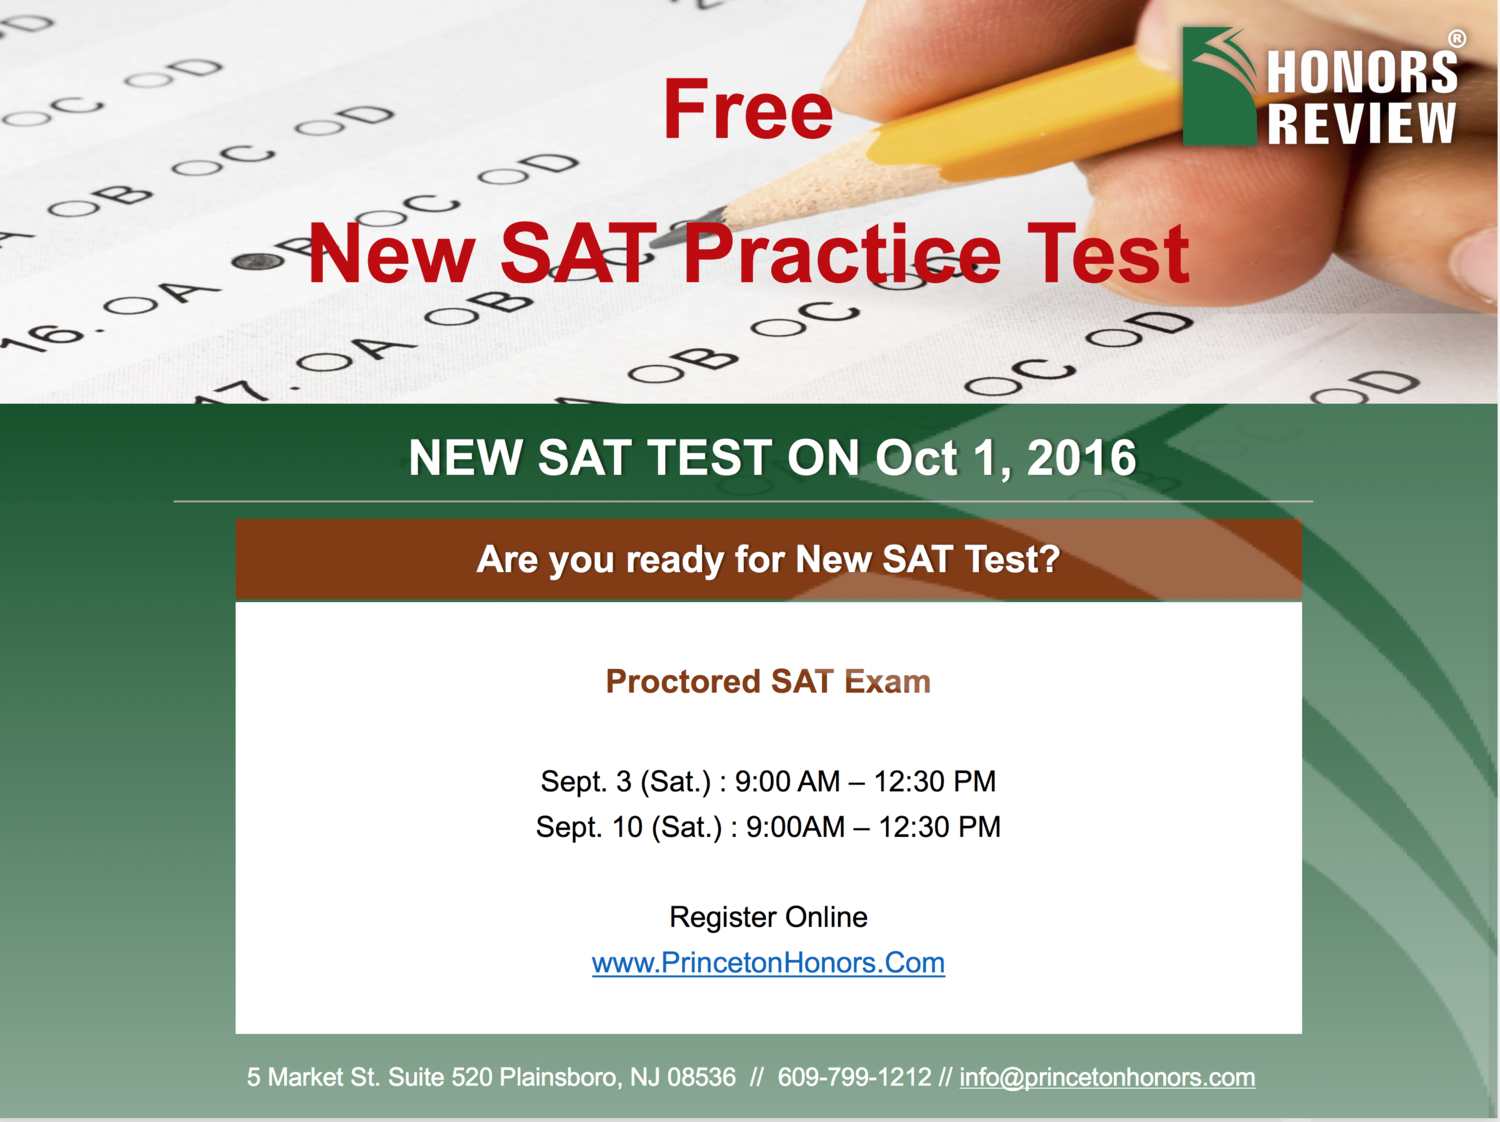 FREE SAT PRACTICE TEST — Honors Review